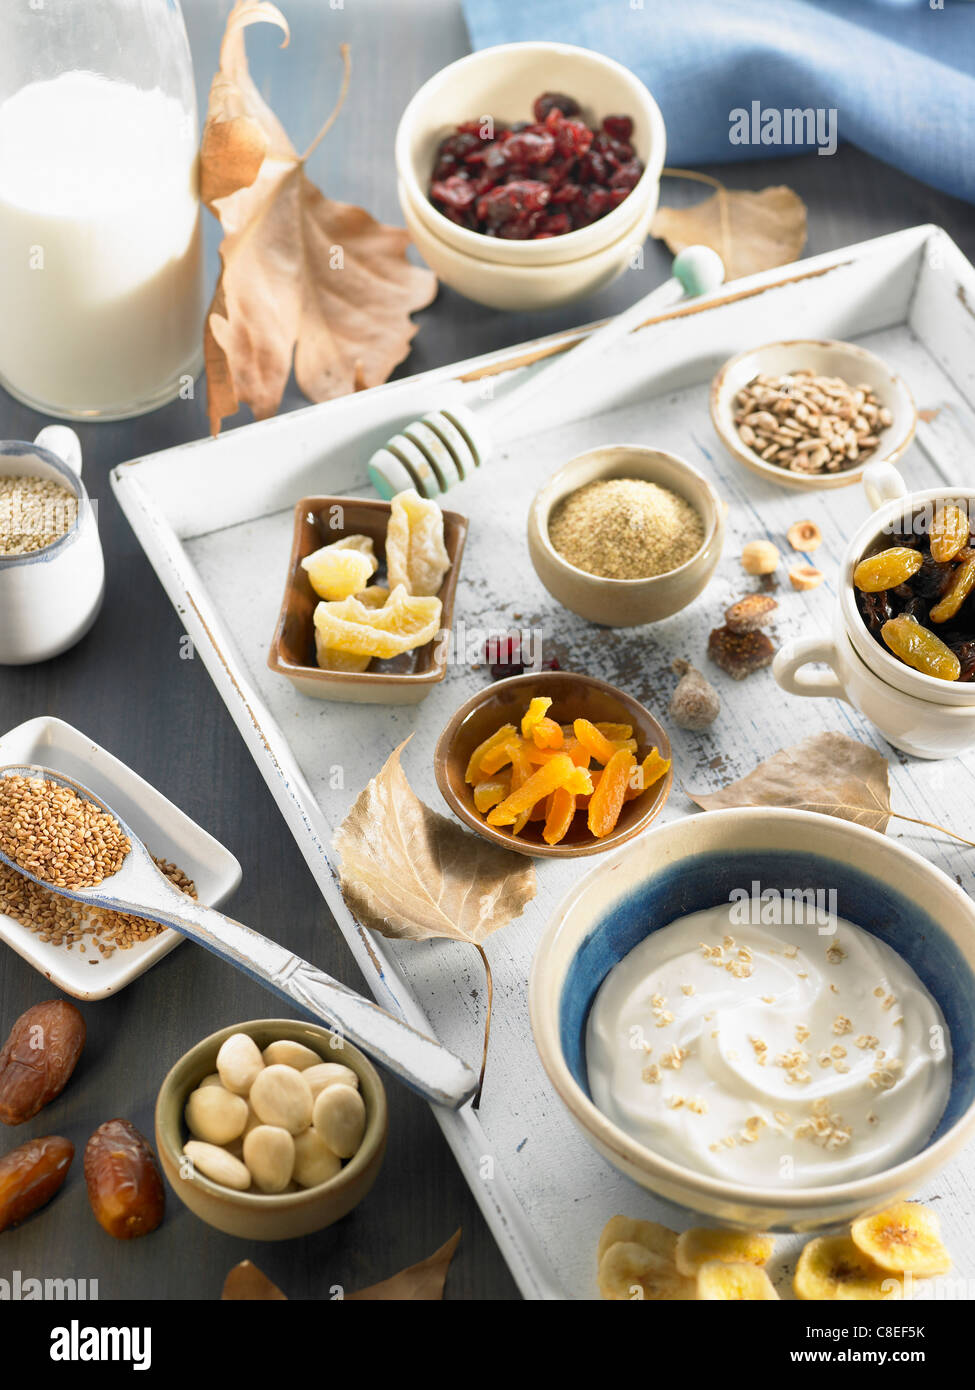 Ingredients for Fromage blanc with muesli and dried fruit - Stock Image